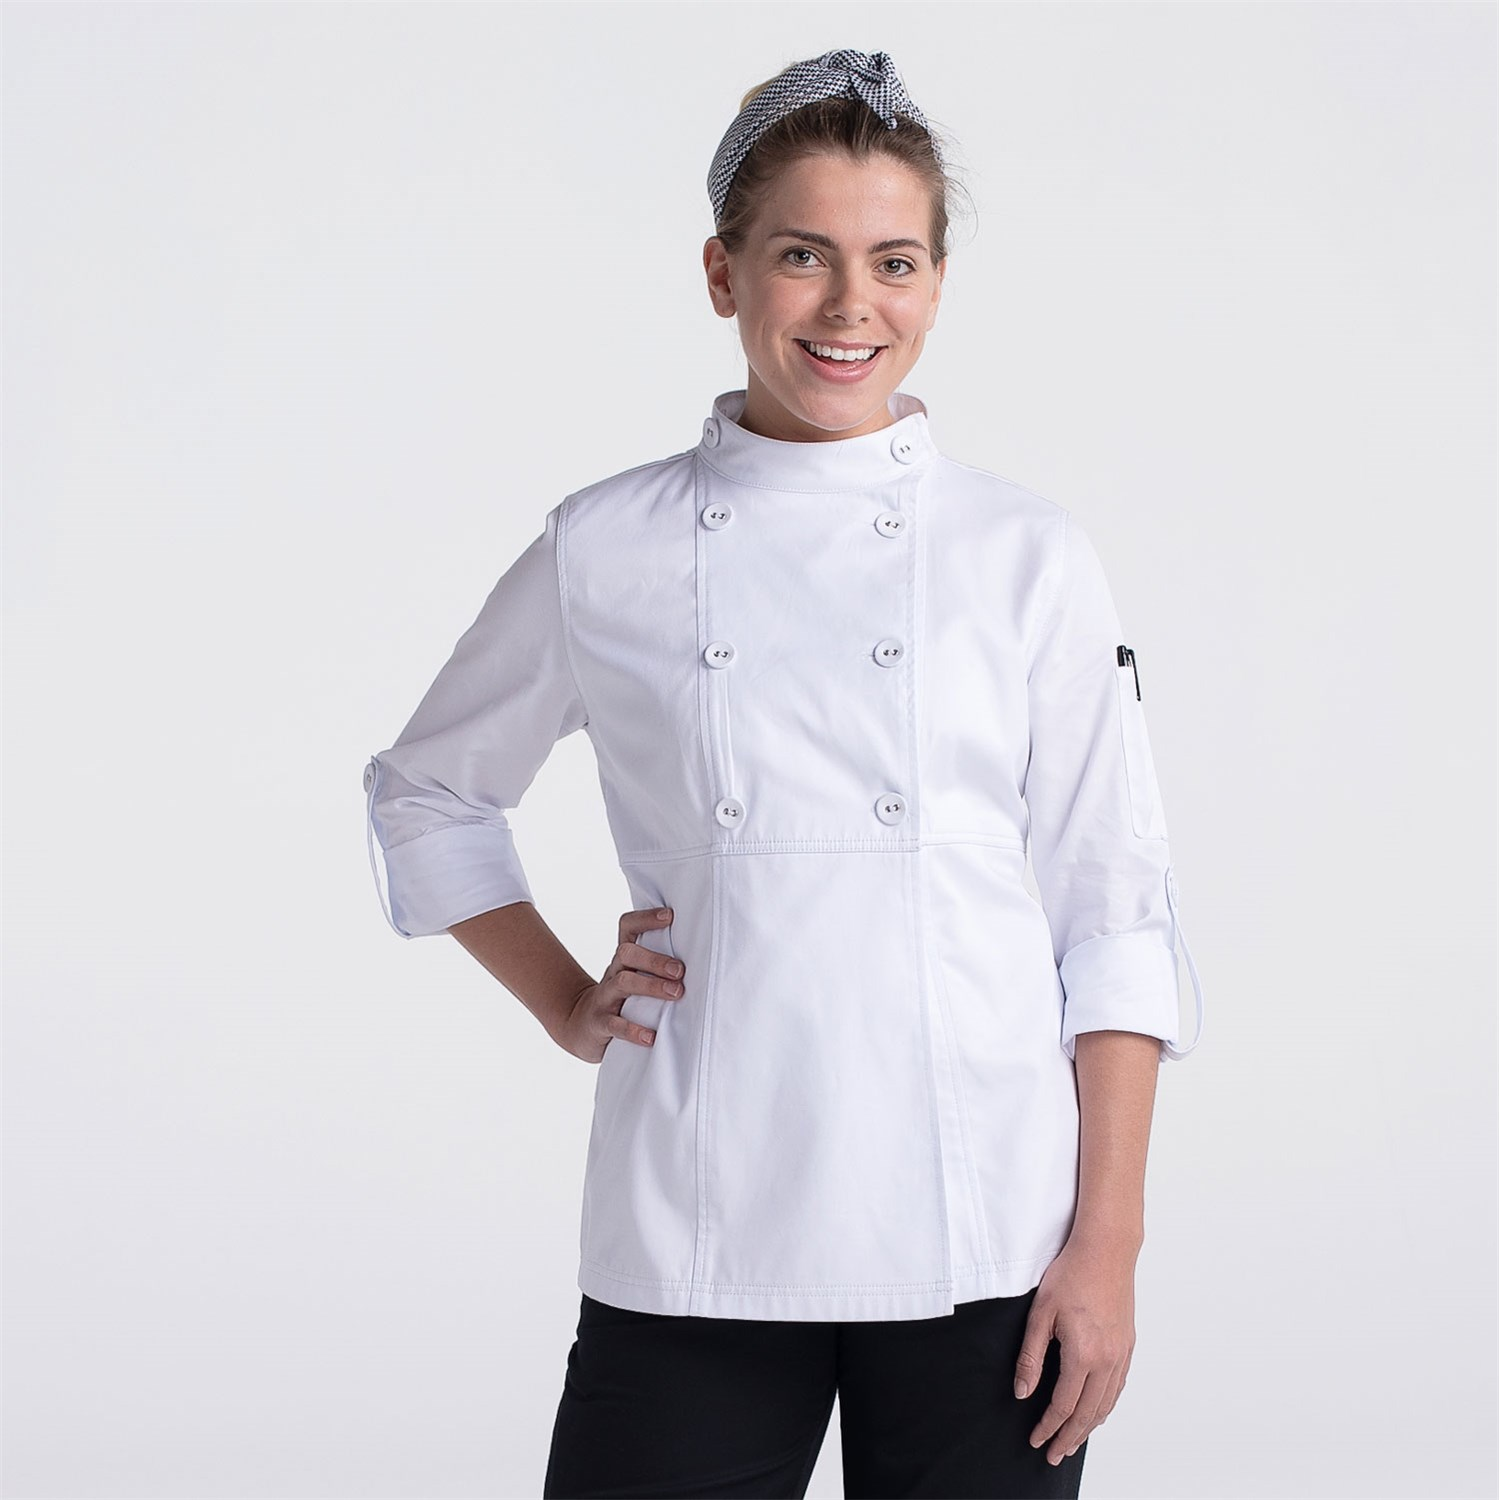 Women's Designer Chef Jacket (CW4463) - Color White